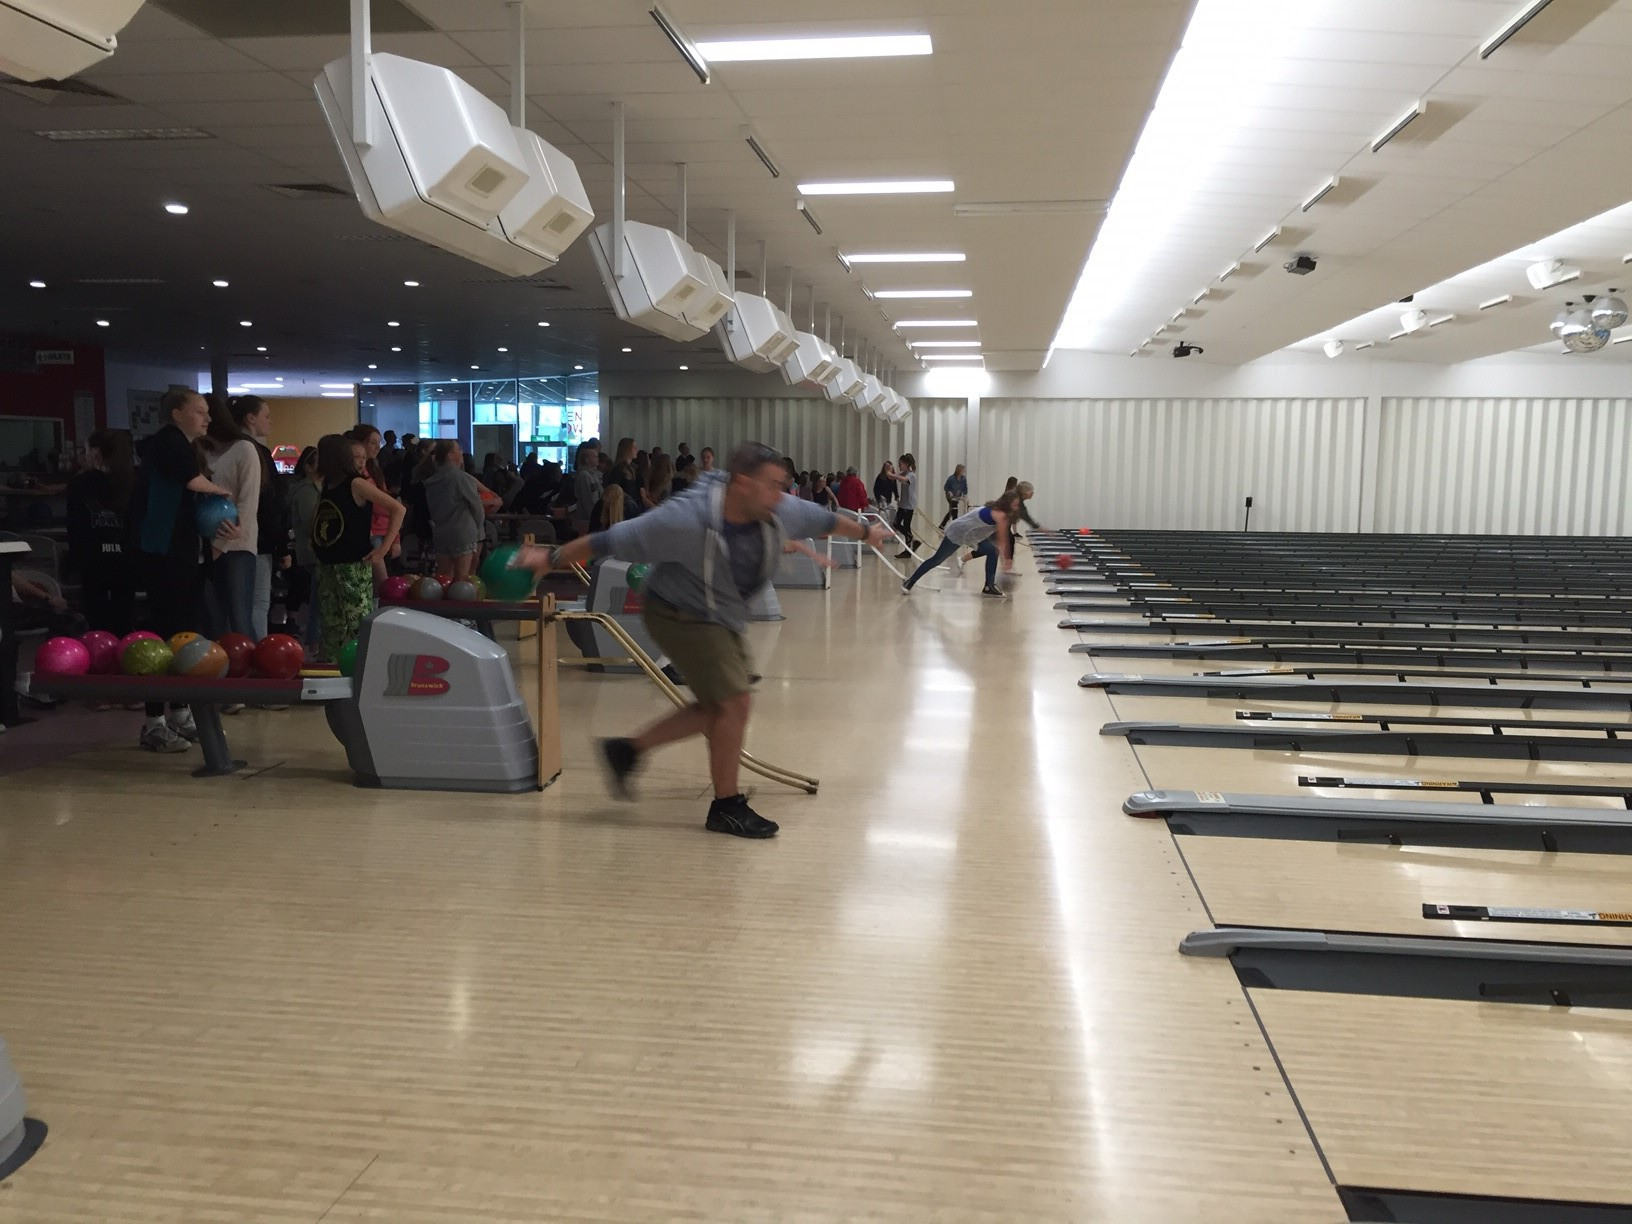 Dale demonstrating a gutter ball!